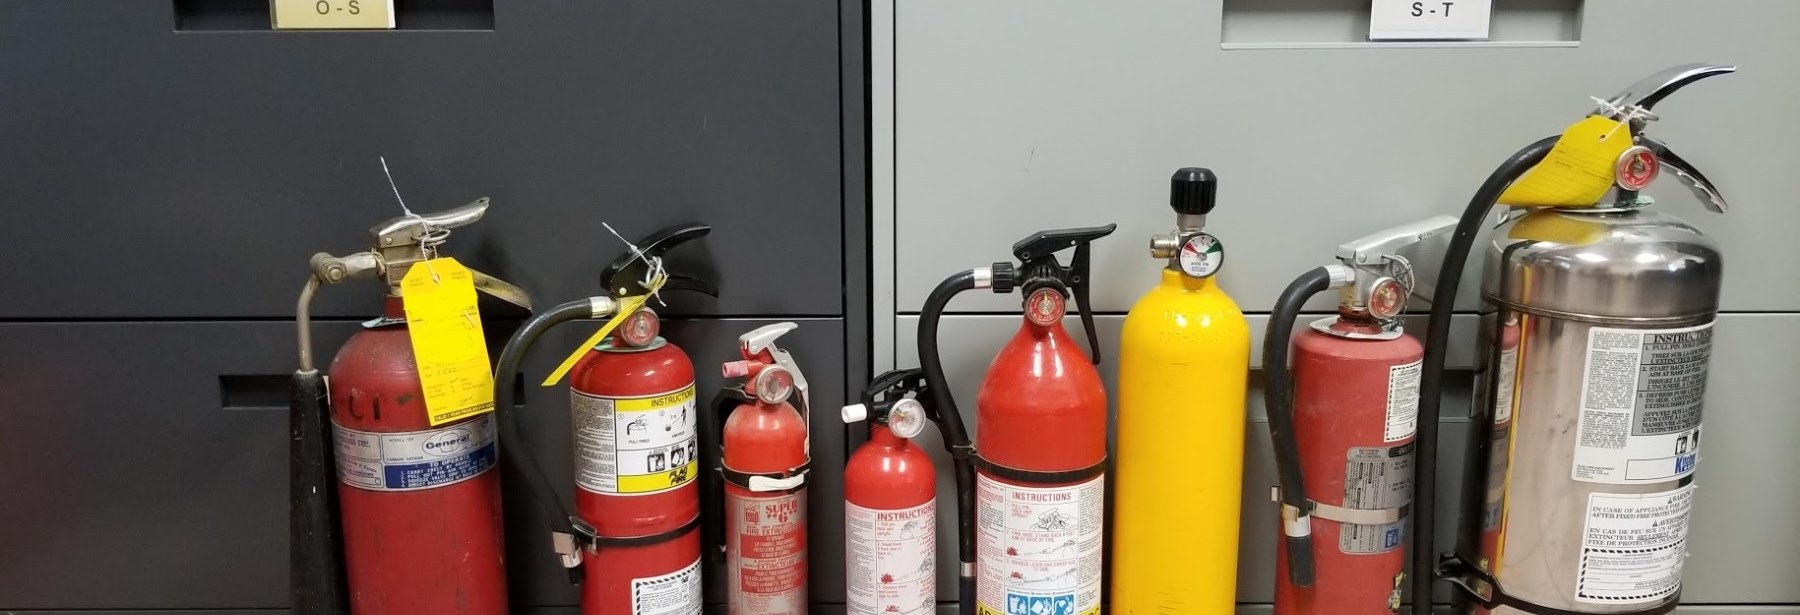 several extinguishers standing on the floor in a row varying sizes